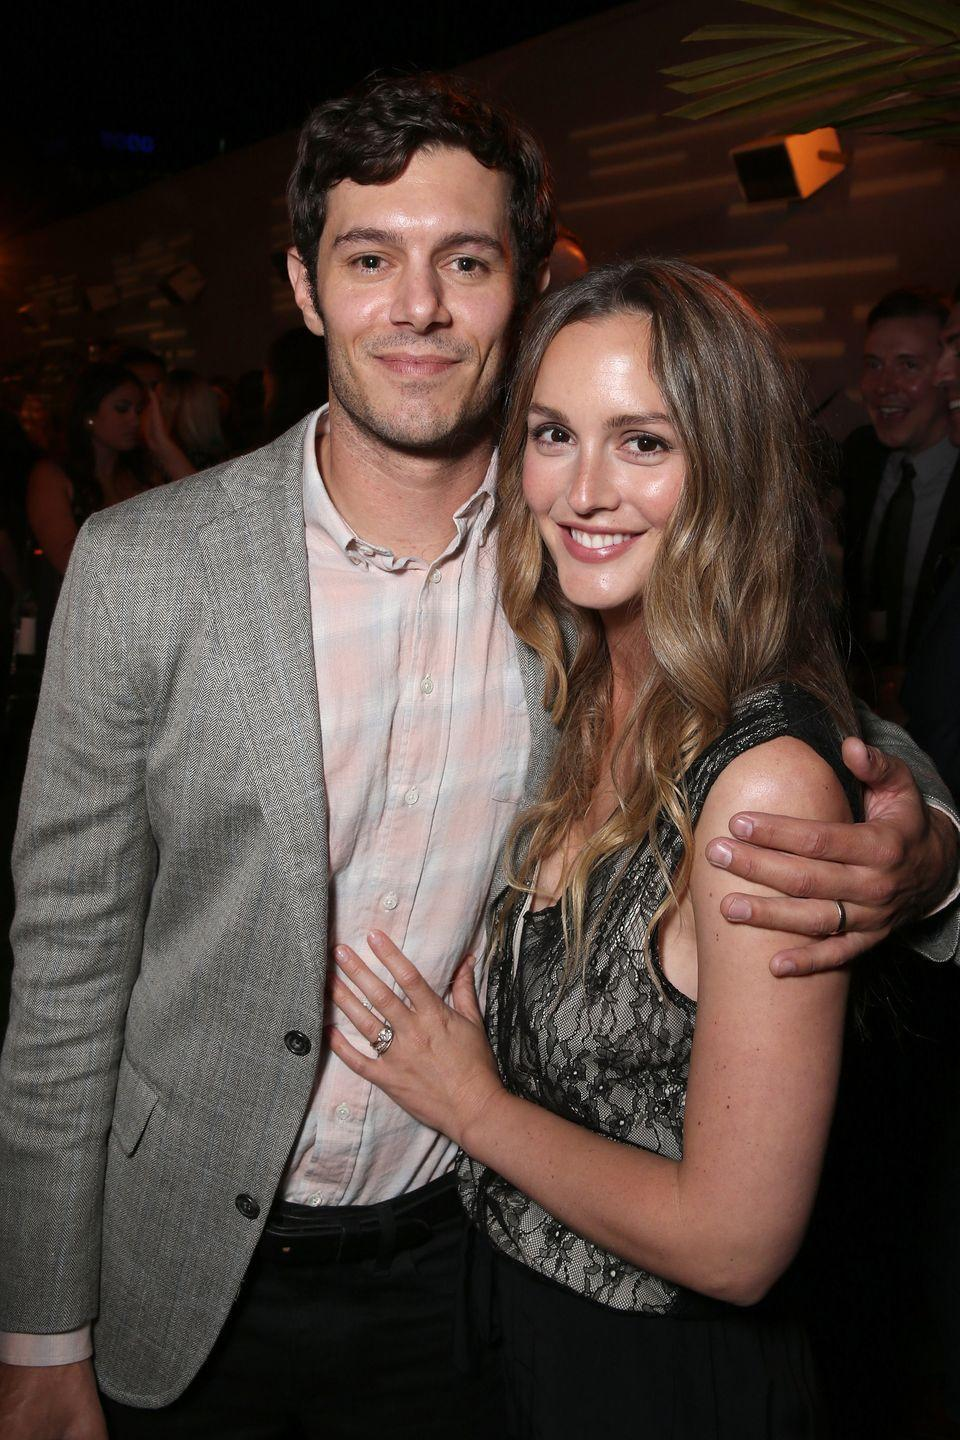 <p>The couple, who married in 2014 and have one daughter, used to star on the biggest teen dramas of their time (separate shows, but still). Besides their similar breakout acting roles and a kid, they also share identical cheekbones, eyes, and well-defined chins. </p>